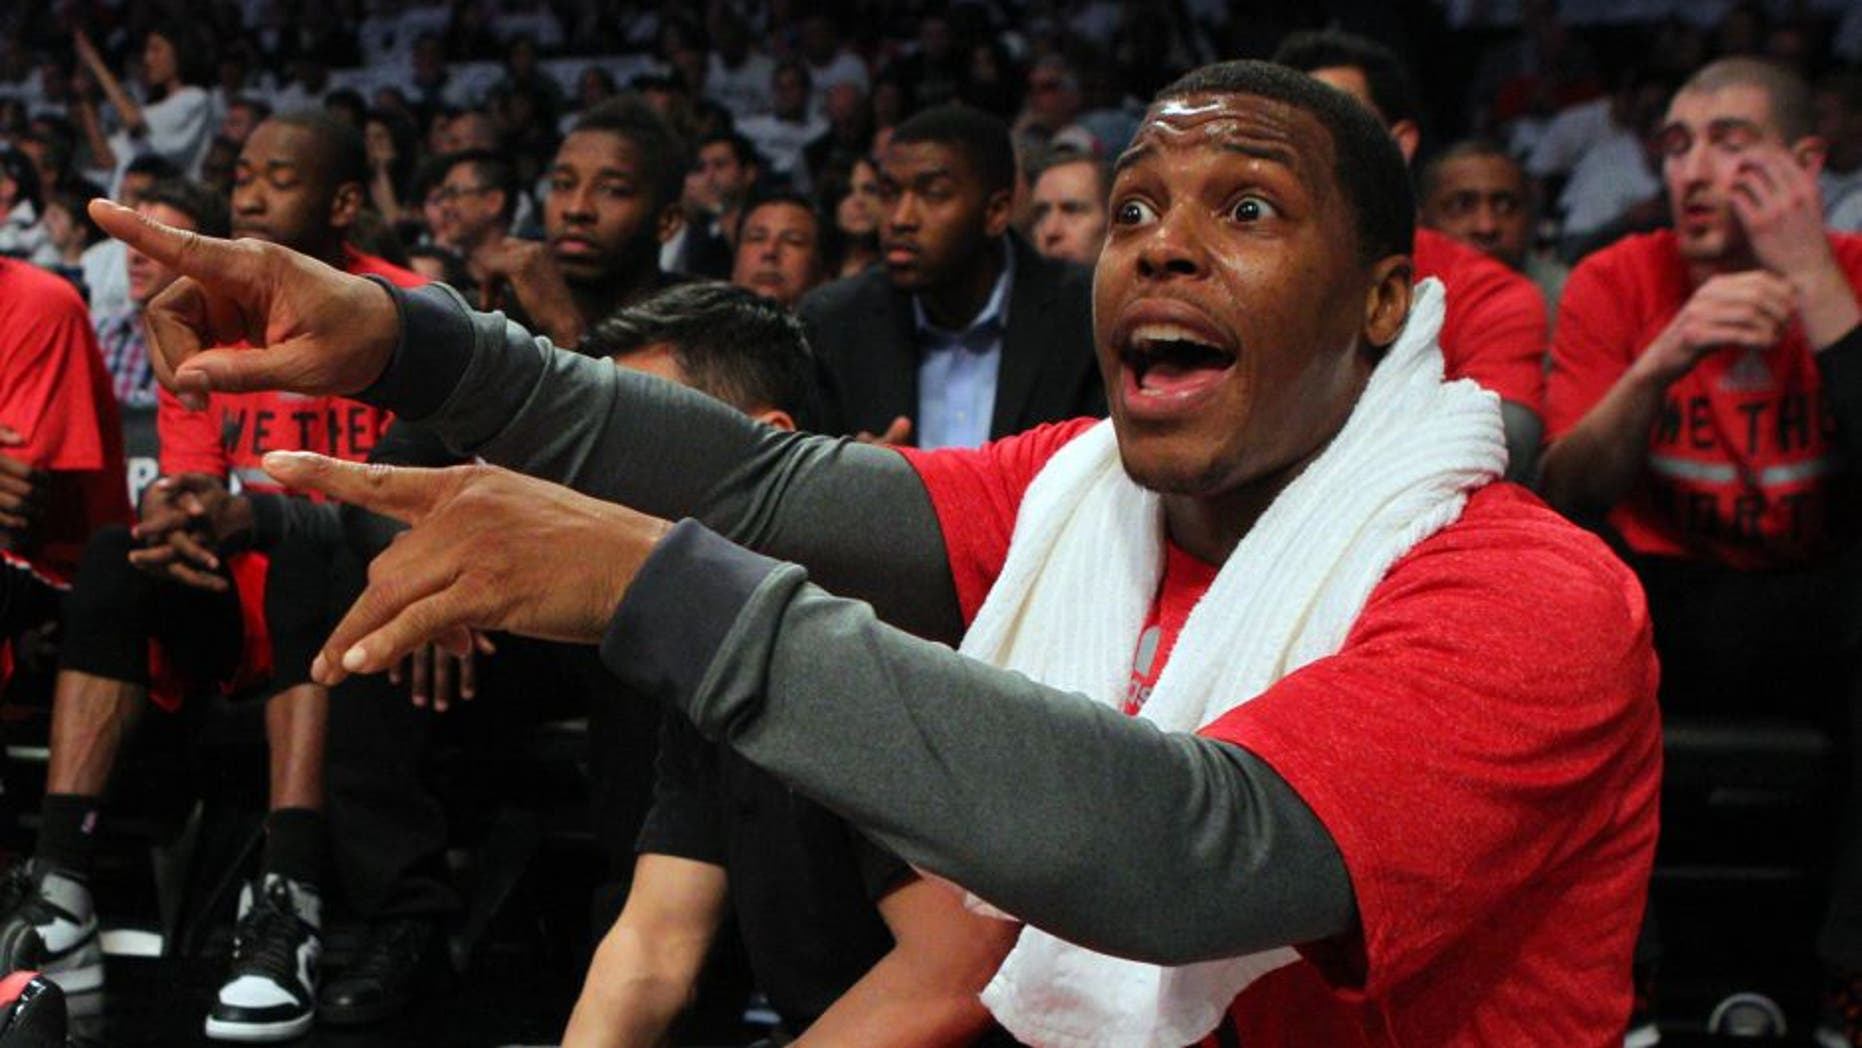 May 2, 2014; Brooklyn, NY, USA; Toronto Raptors point guard Kyle Lowry (7) calls out to a teammate from the bench during the second quarter of game six of the first round of the 2014 NBA Playoffs against the Brooklyn Nets at Barclays Center. Mandatory Credit: Brad Penner-USA TODAY Sports